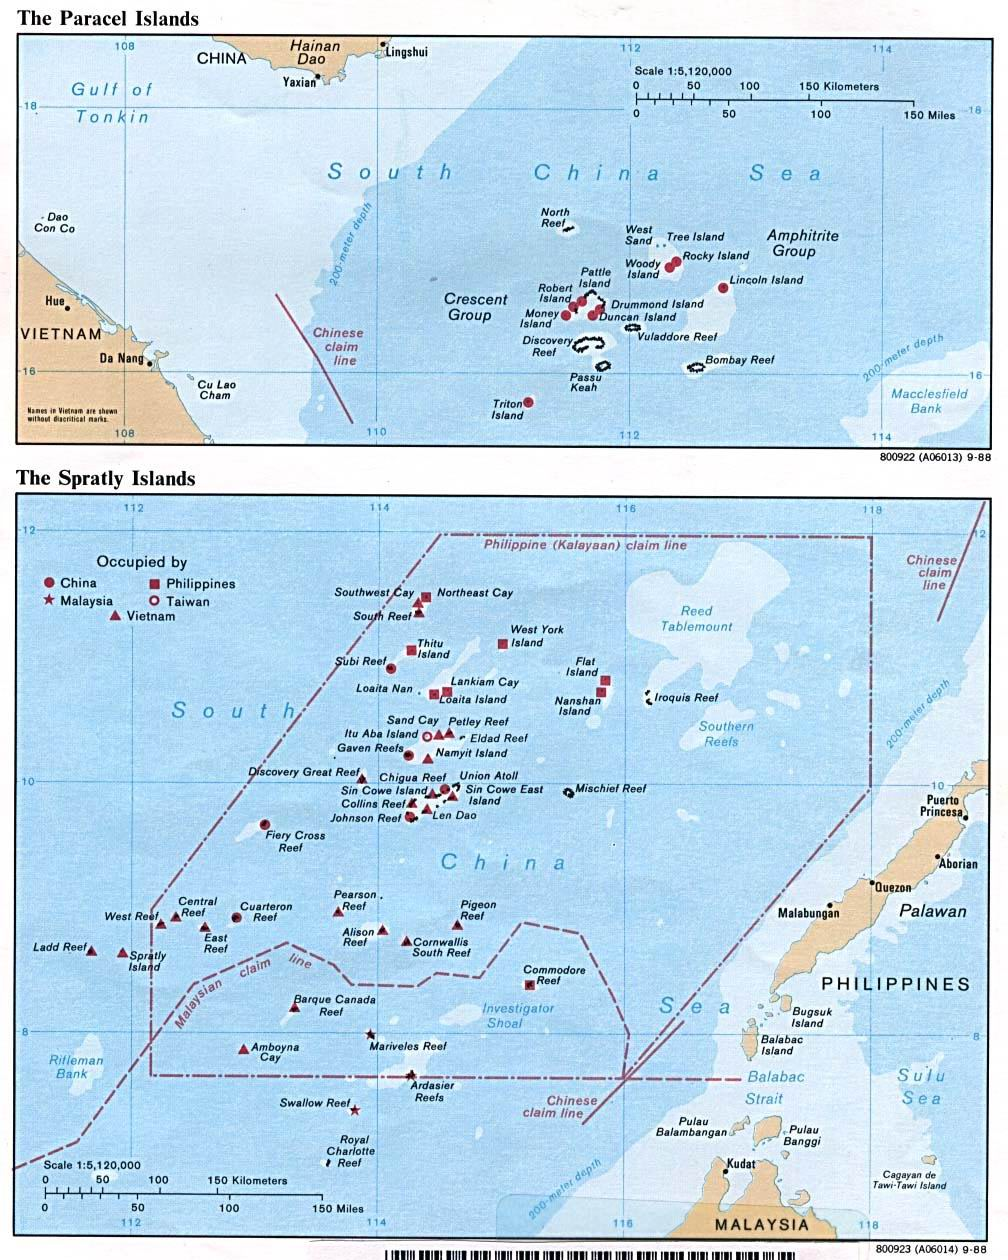 Paracel and Spratly Islands 1988